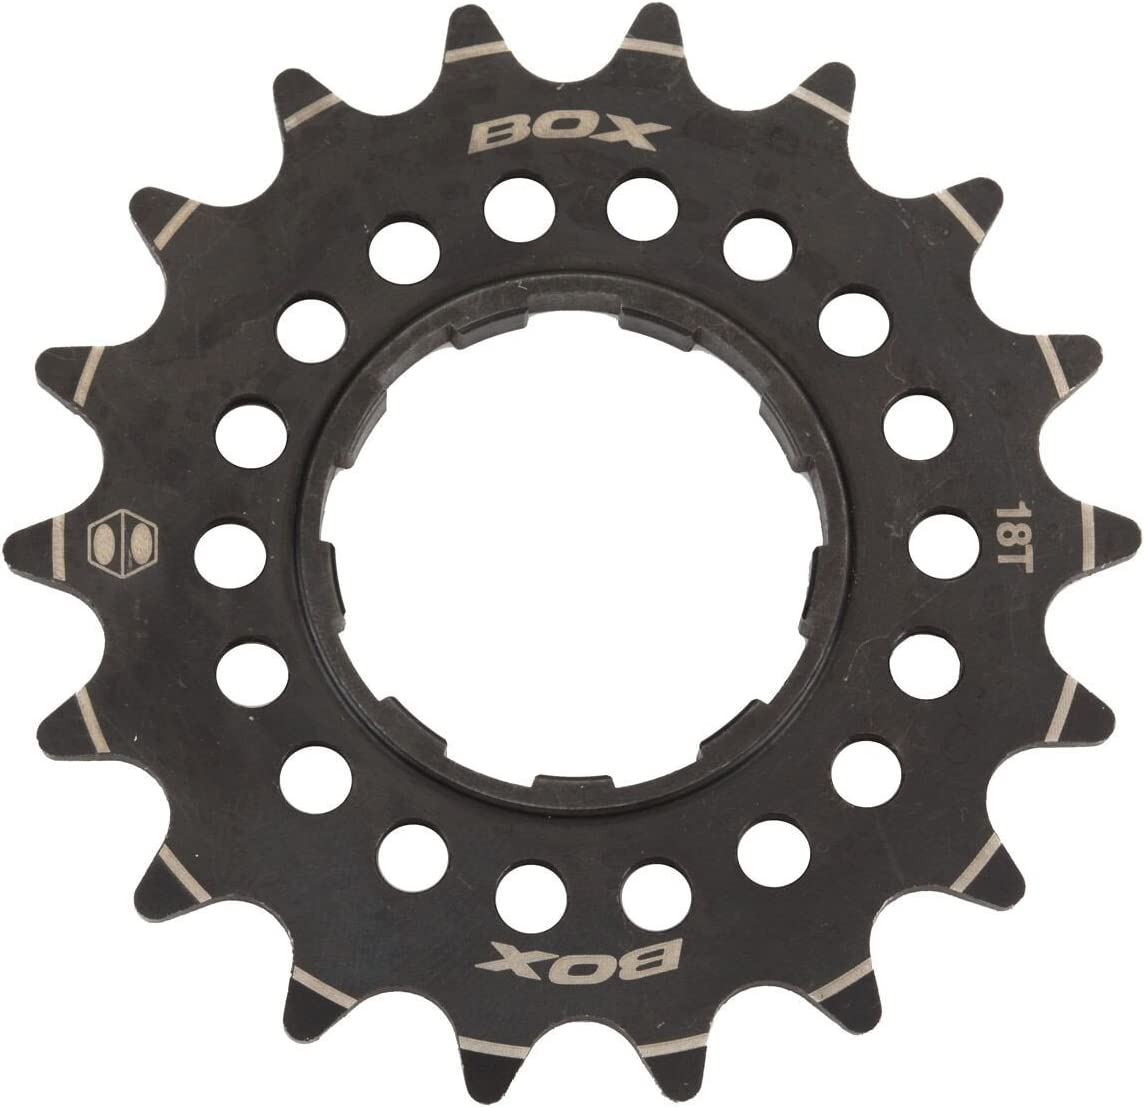 Shimano Mx66 18T Cassette Cog 18 Tooth Bmx Single Speed Gear 3//32 Bike Bicycle